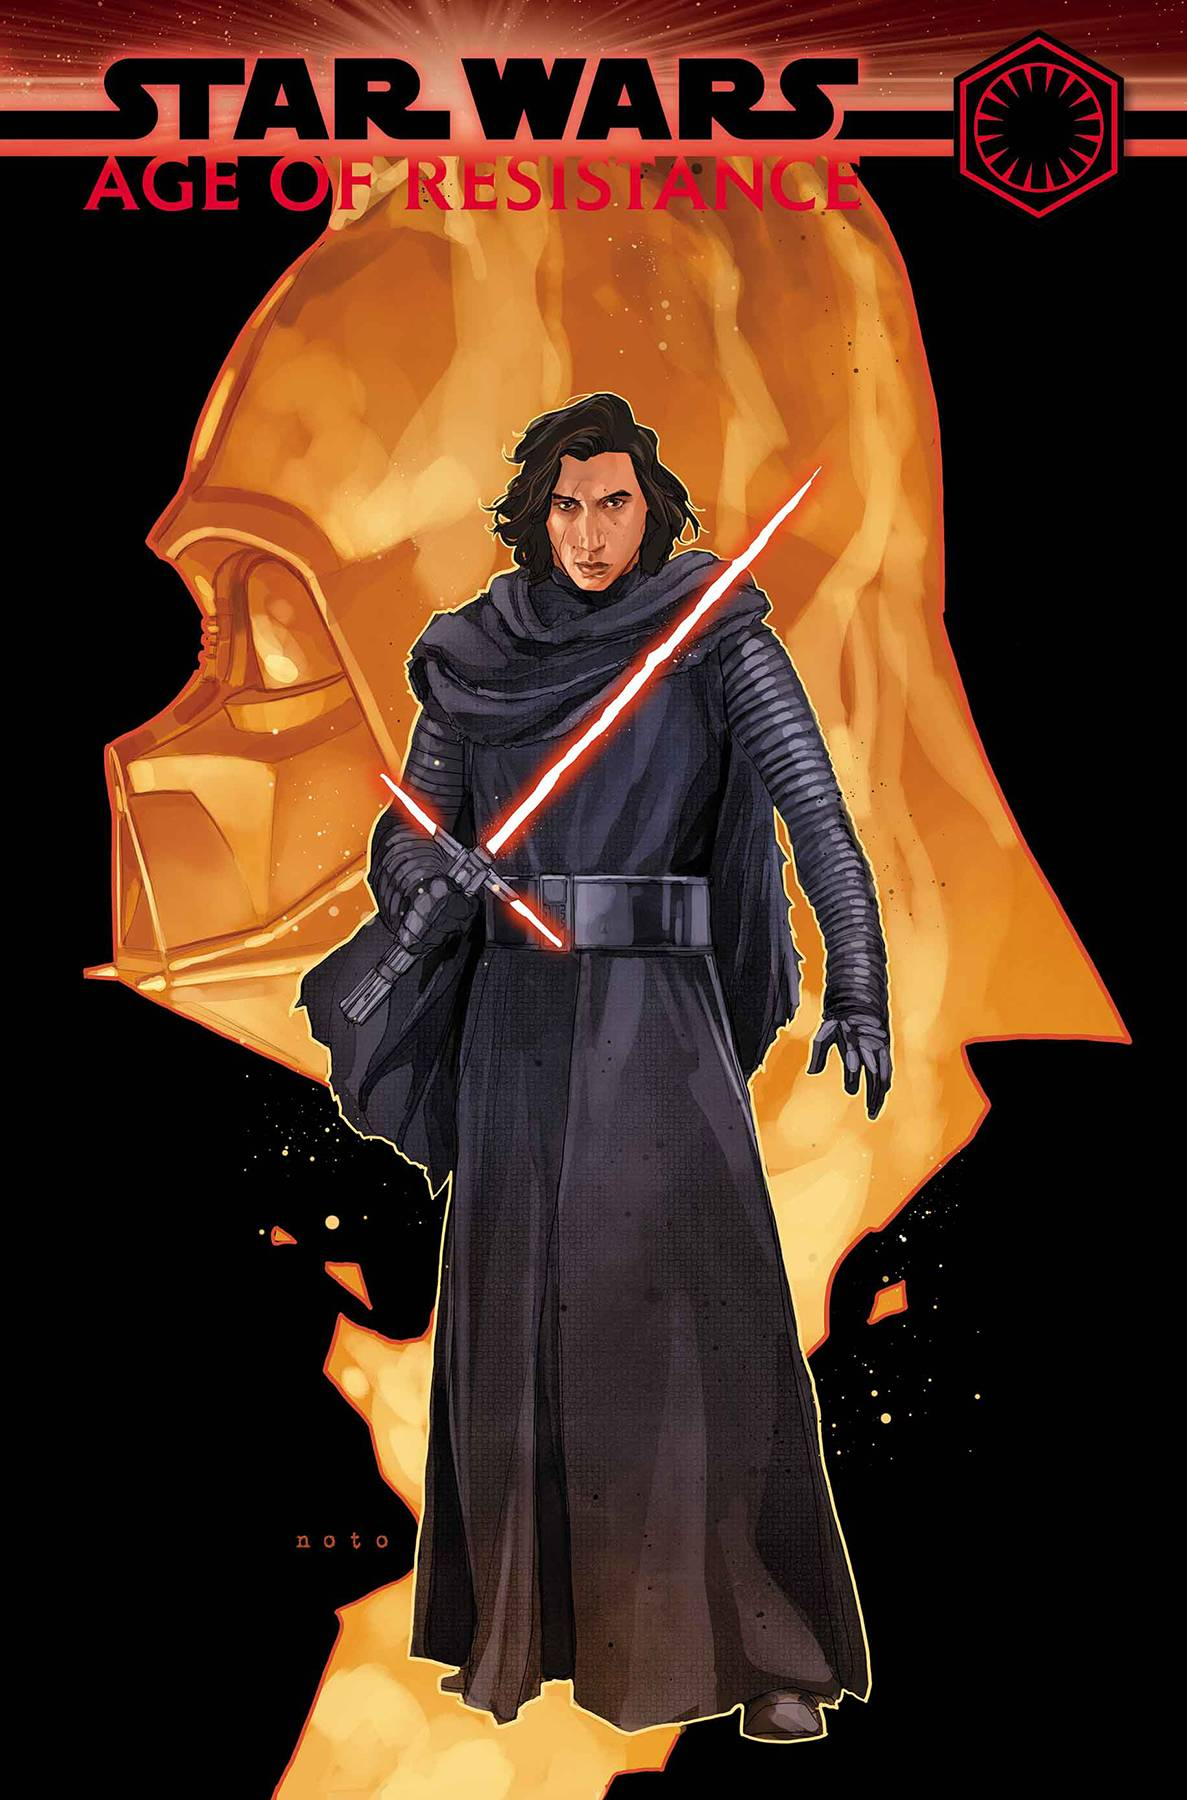 STAR WARS AOR KYLO REN #1